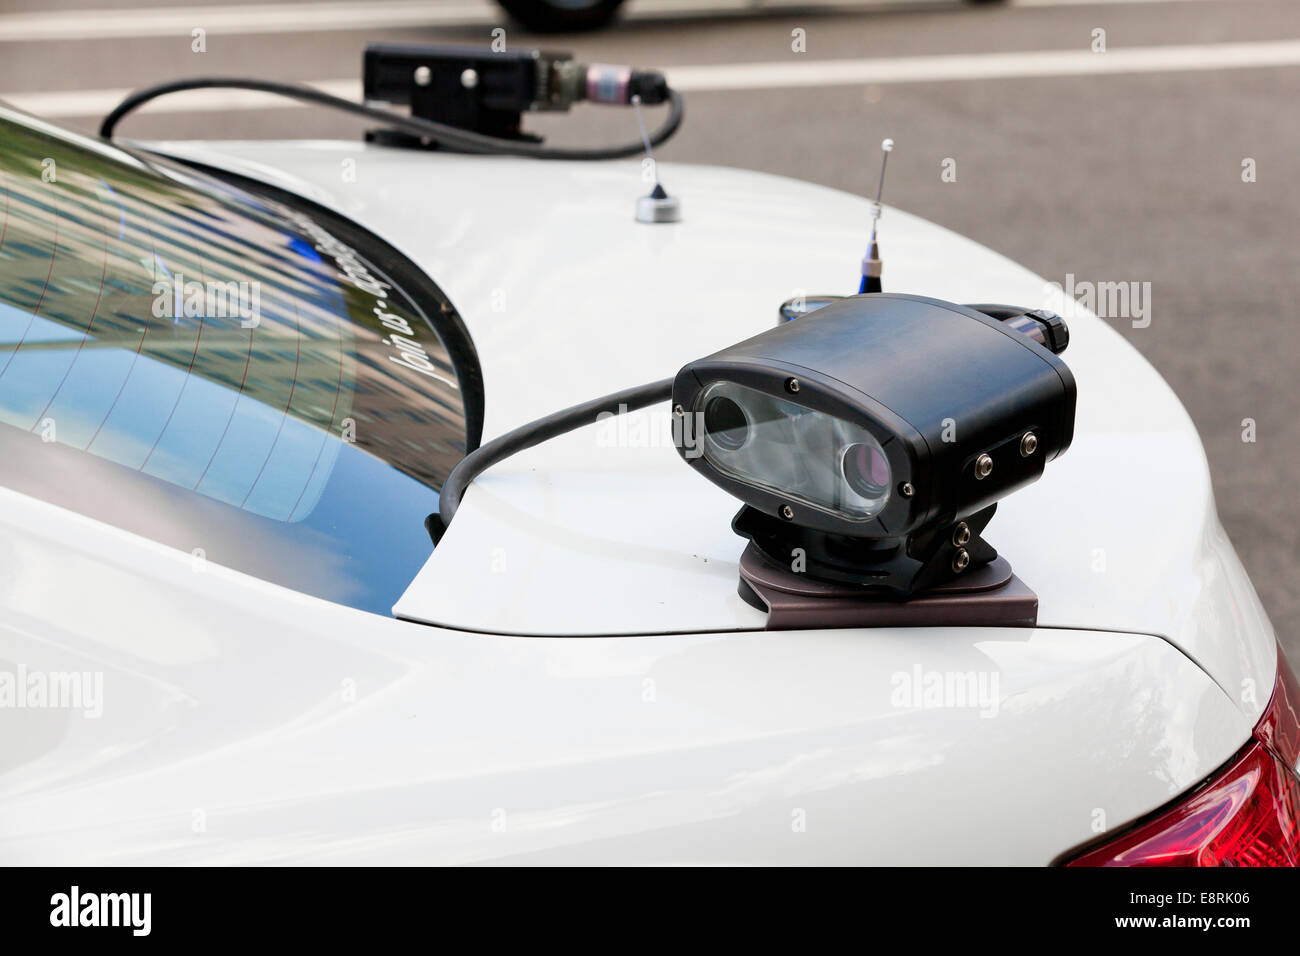 Automatic License Plate Recognition Camera On Back Of